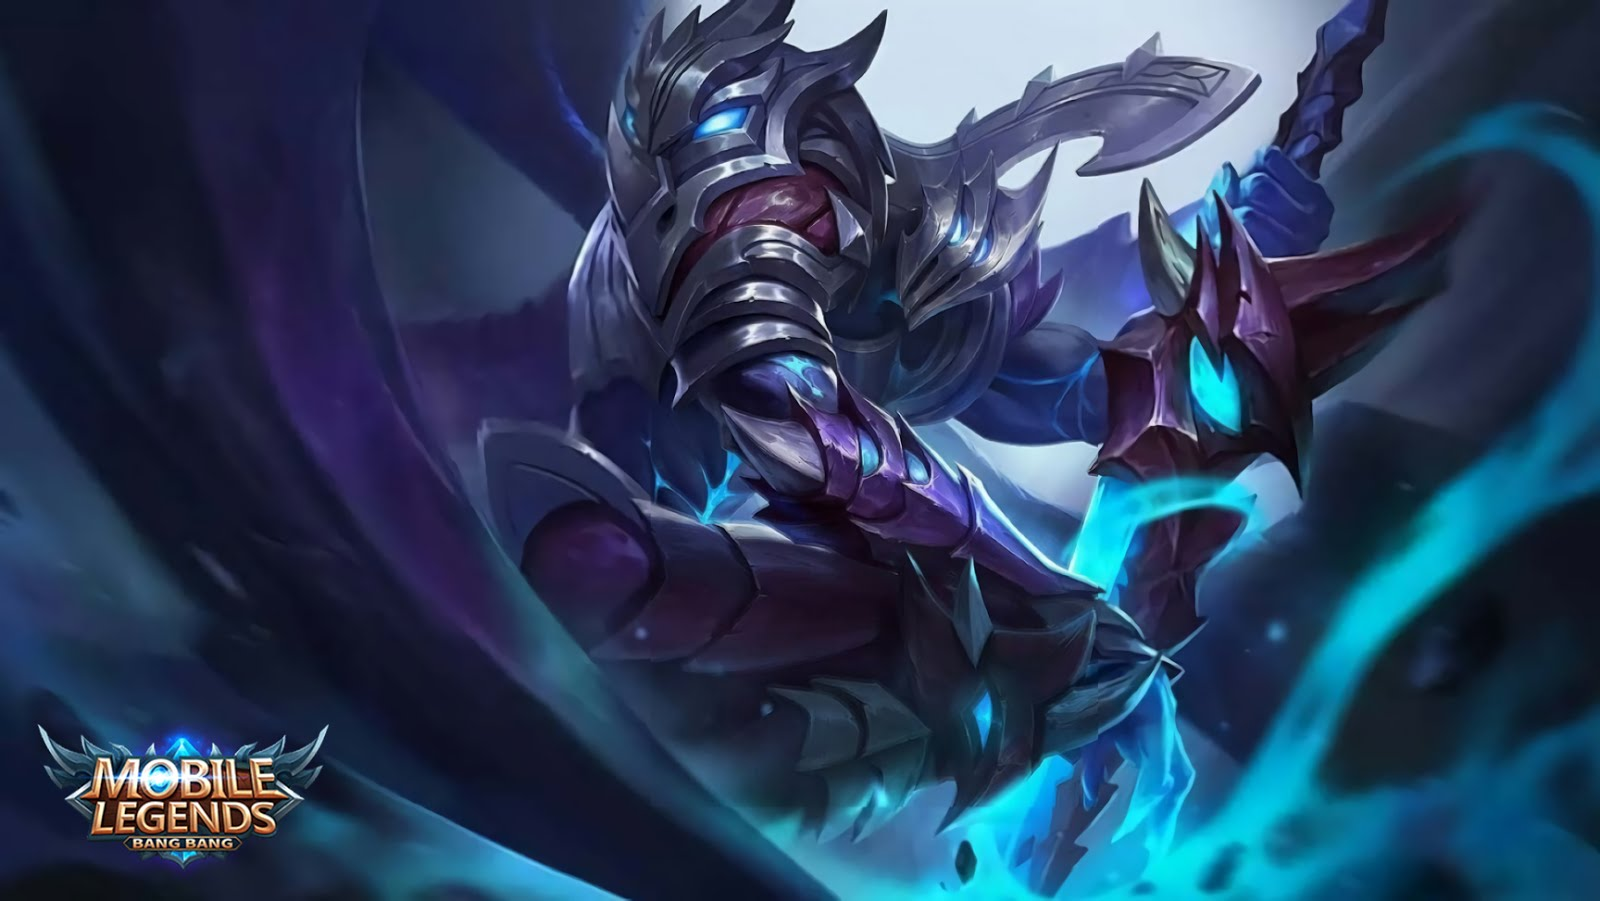 Mobile Legends Wallpapers HD